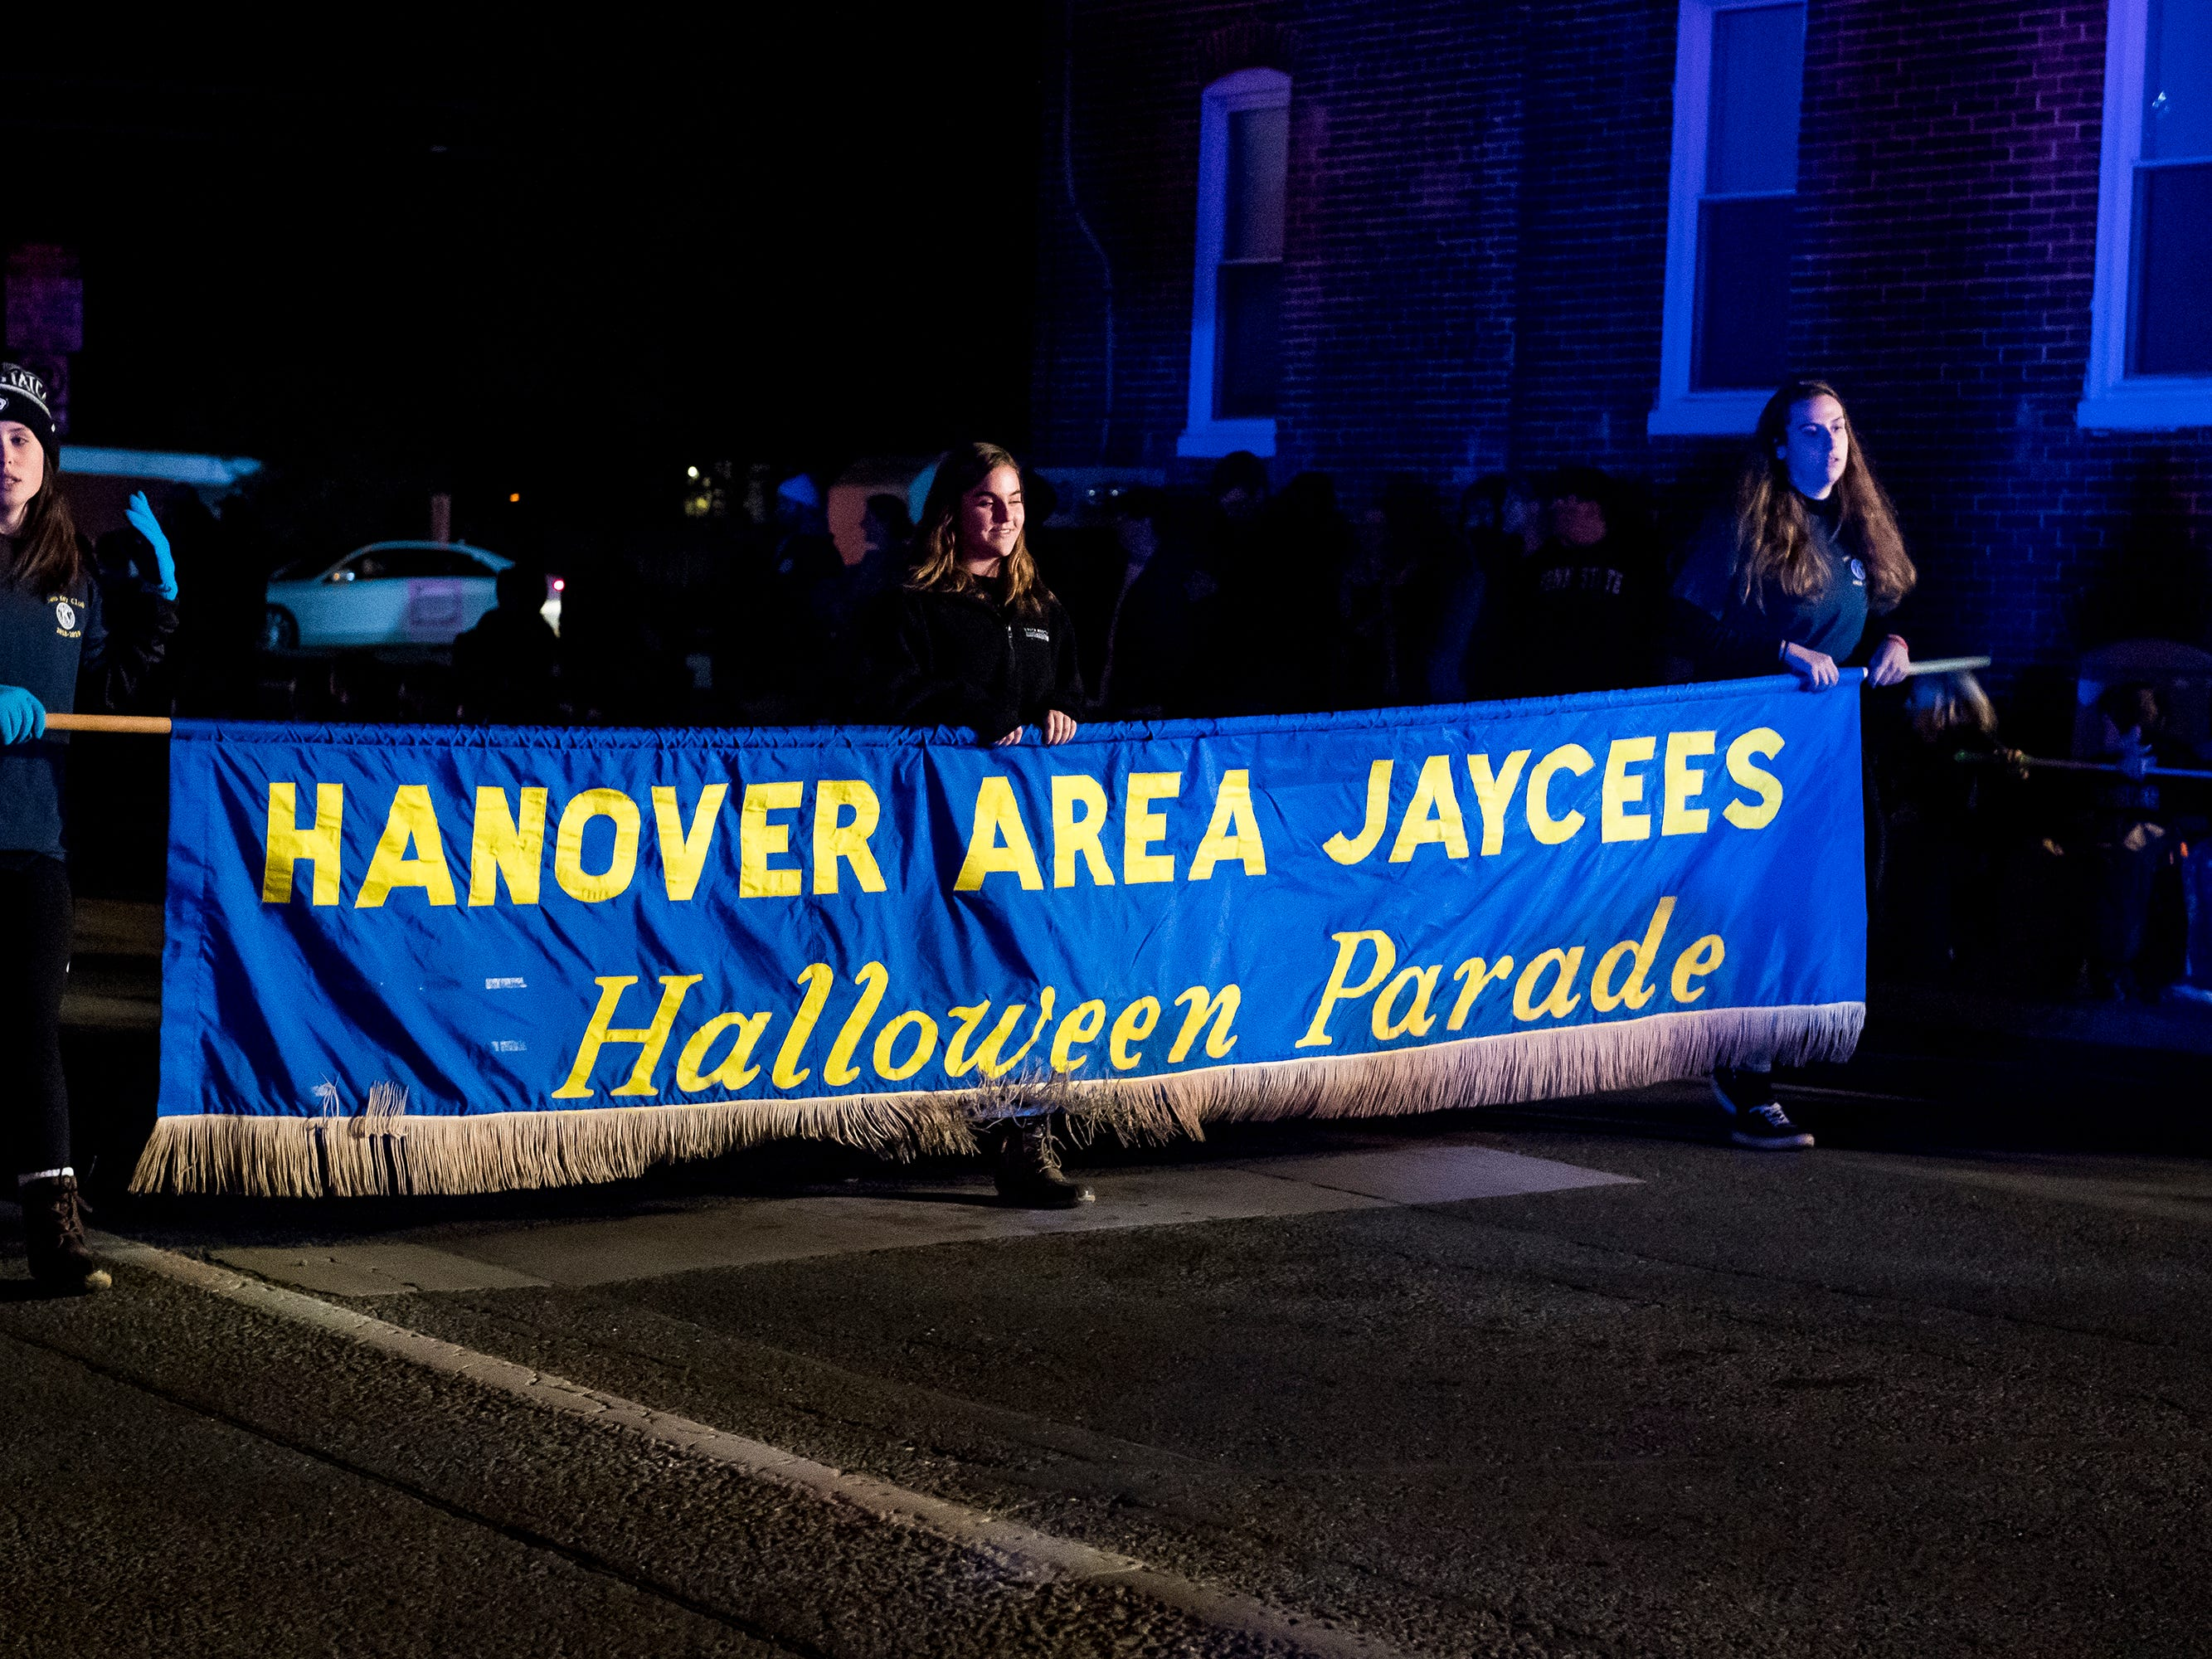 The Hanover Area Jaycees make their way onto Baltimore Street during the start of the 77th annual Hanover Halloween parade on Thursday, October 25, 2018.